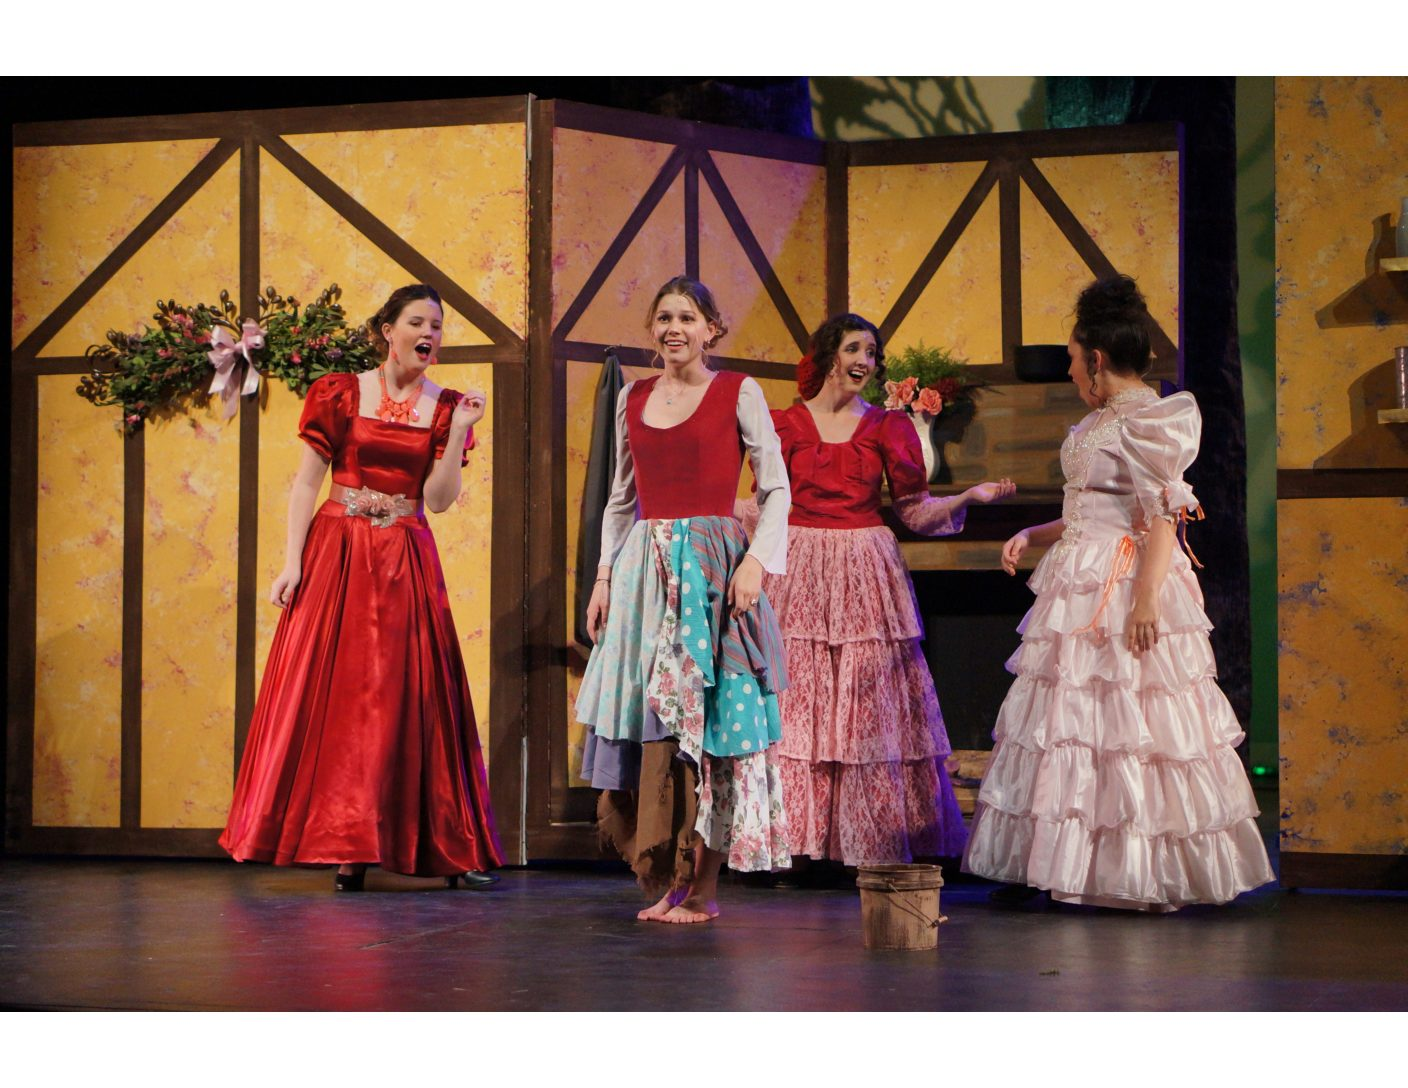 Ladies of Into The Woods share the stage